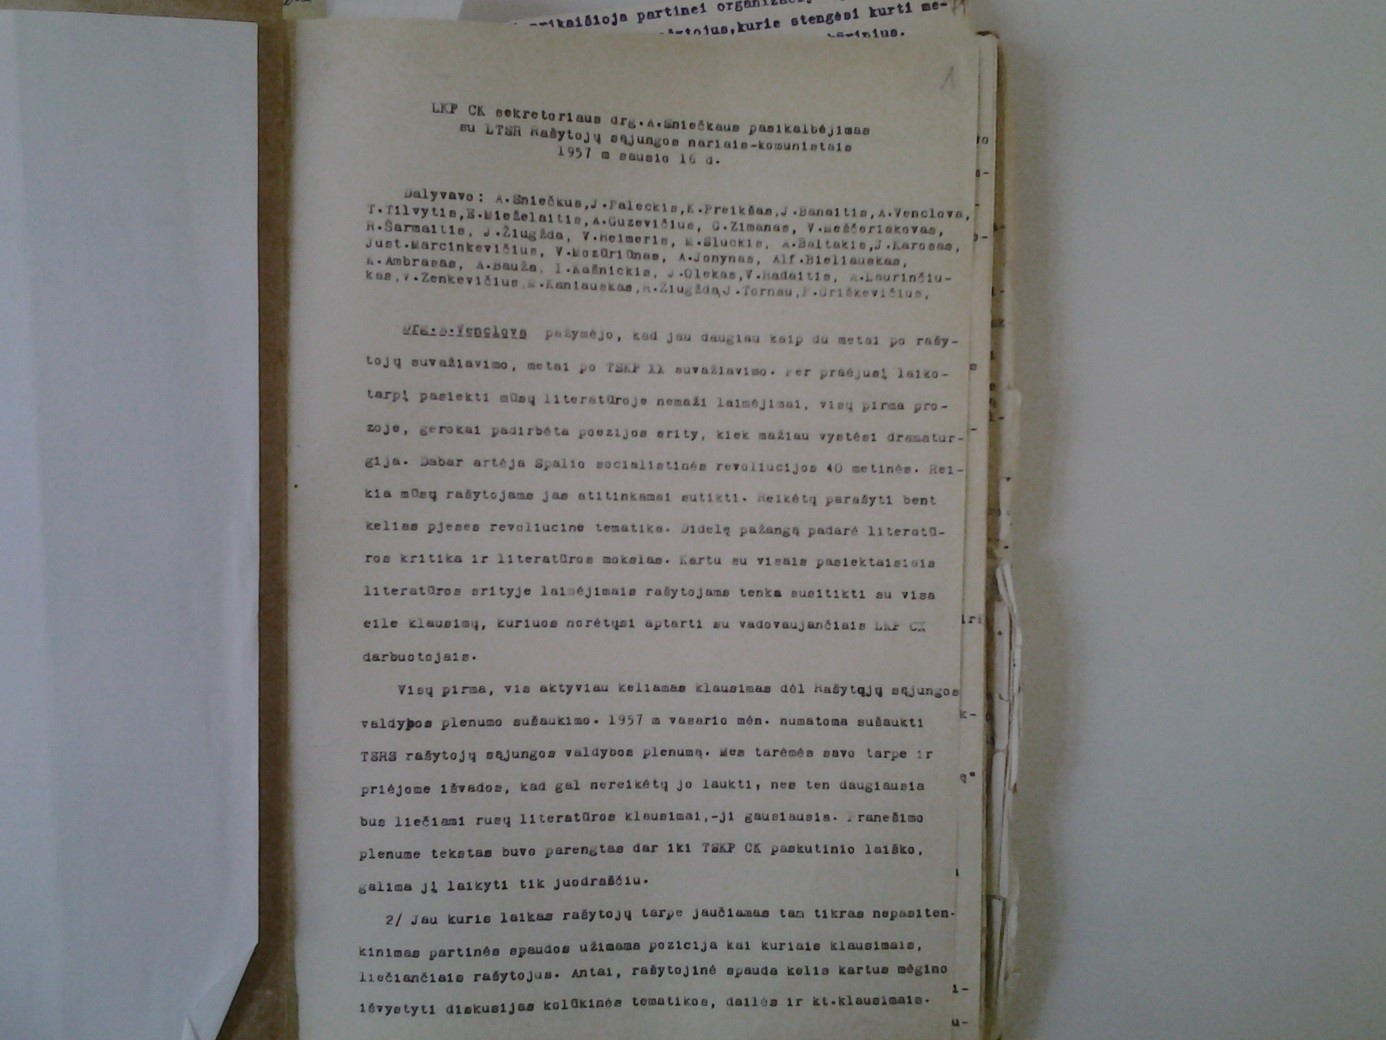 The report of Sniečkus meeting with Lithuanian writers. 1957. Source: Lithuanian Communist party documents archive.